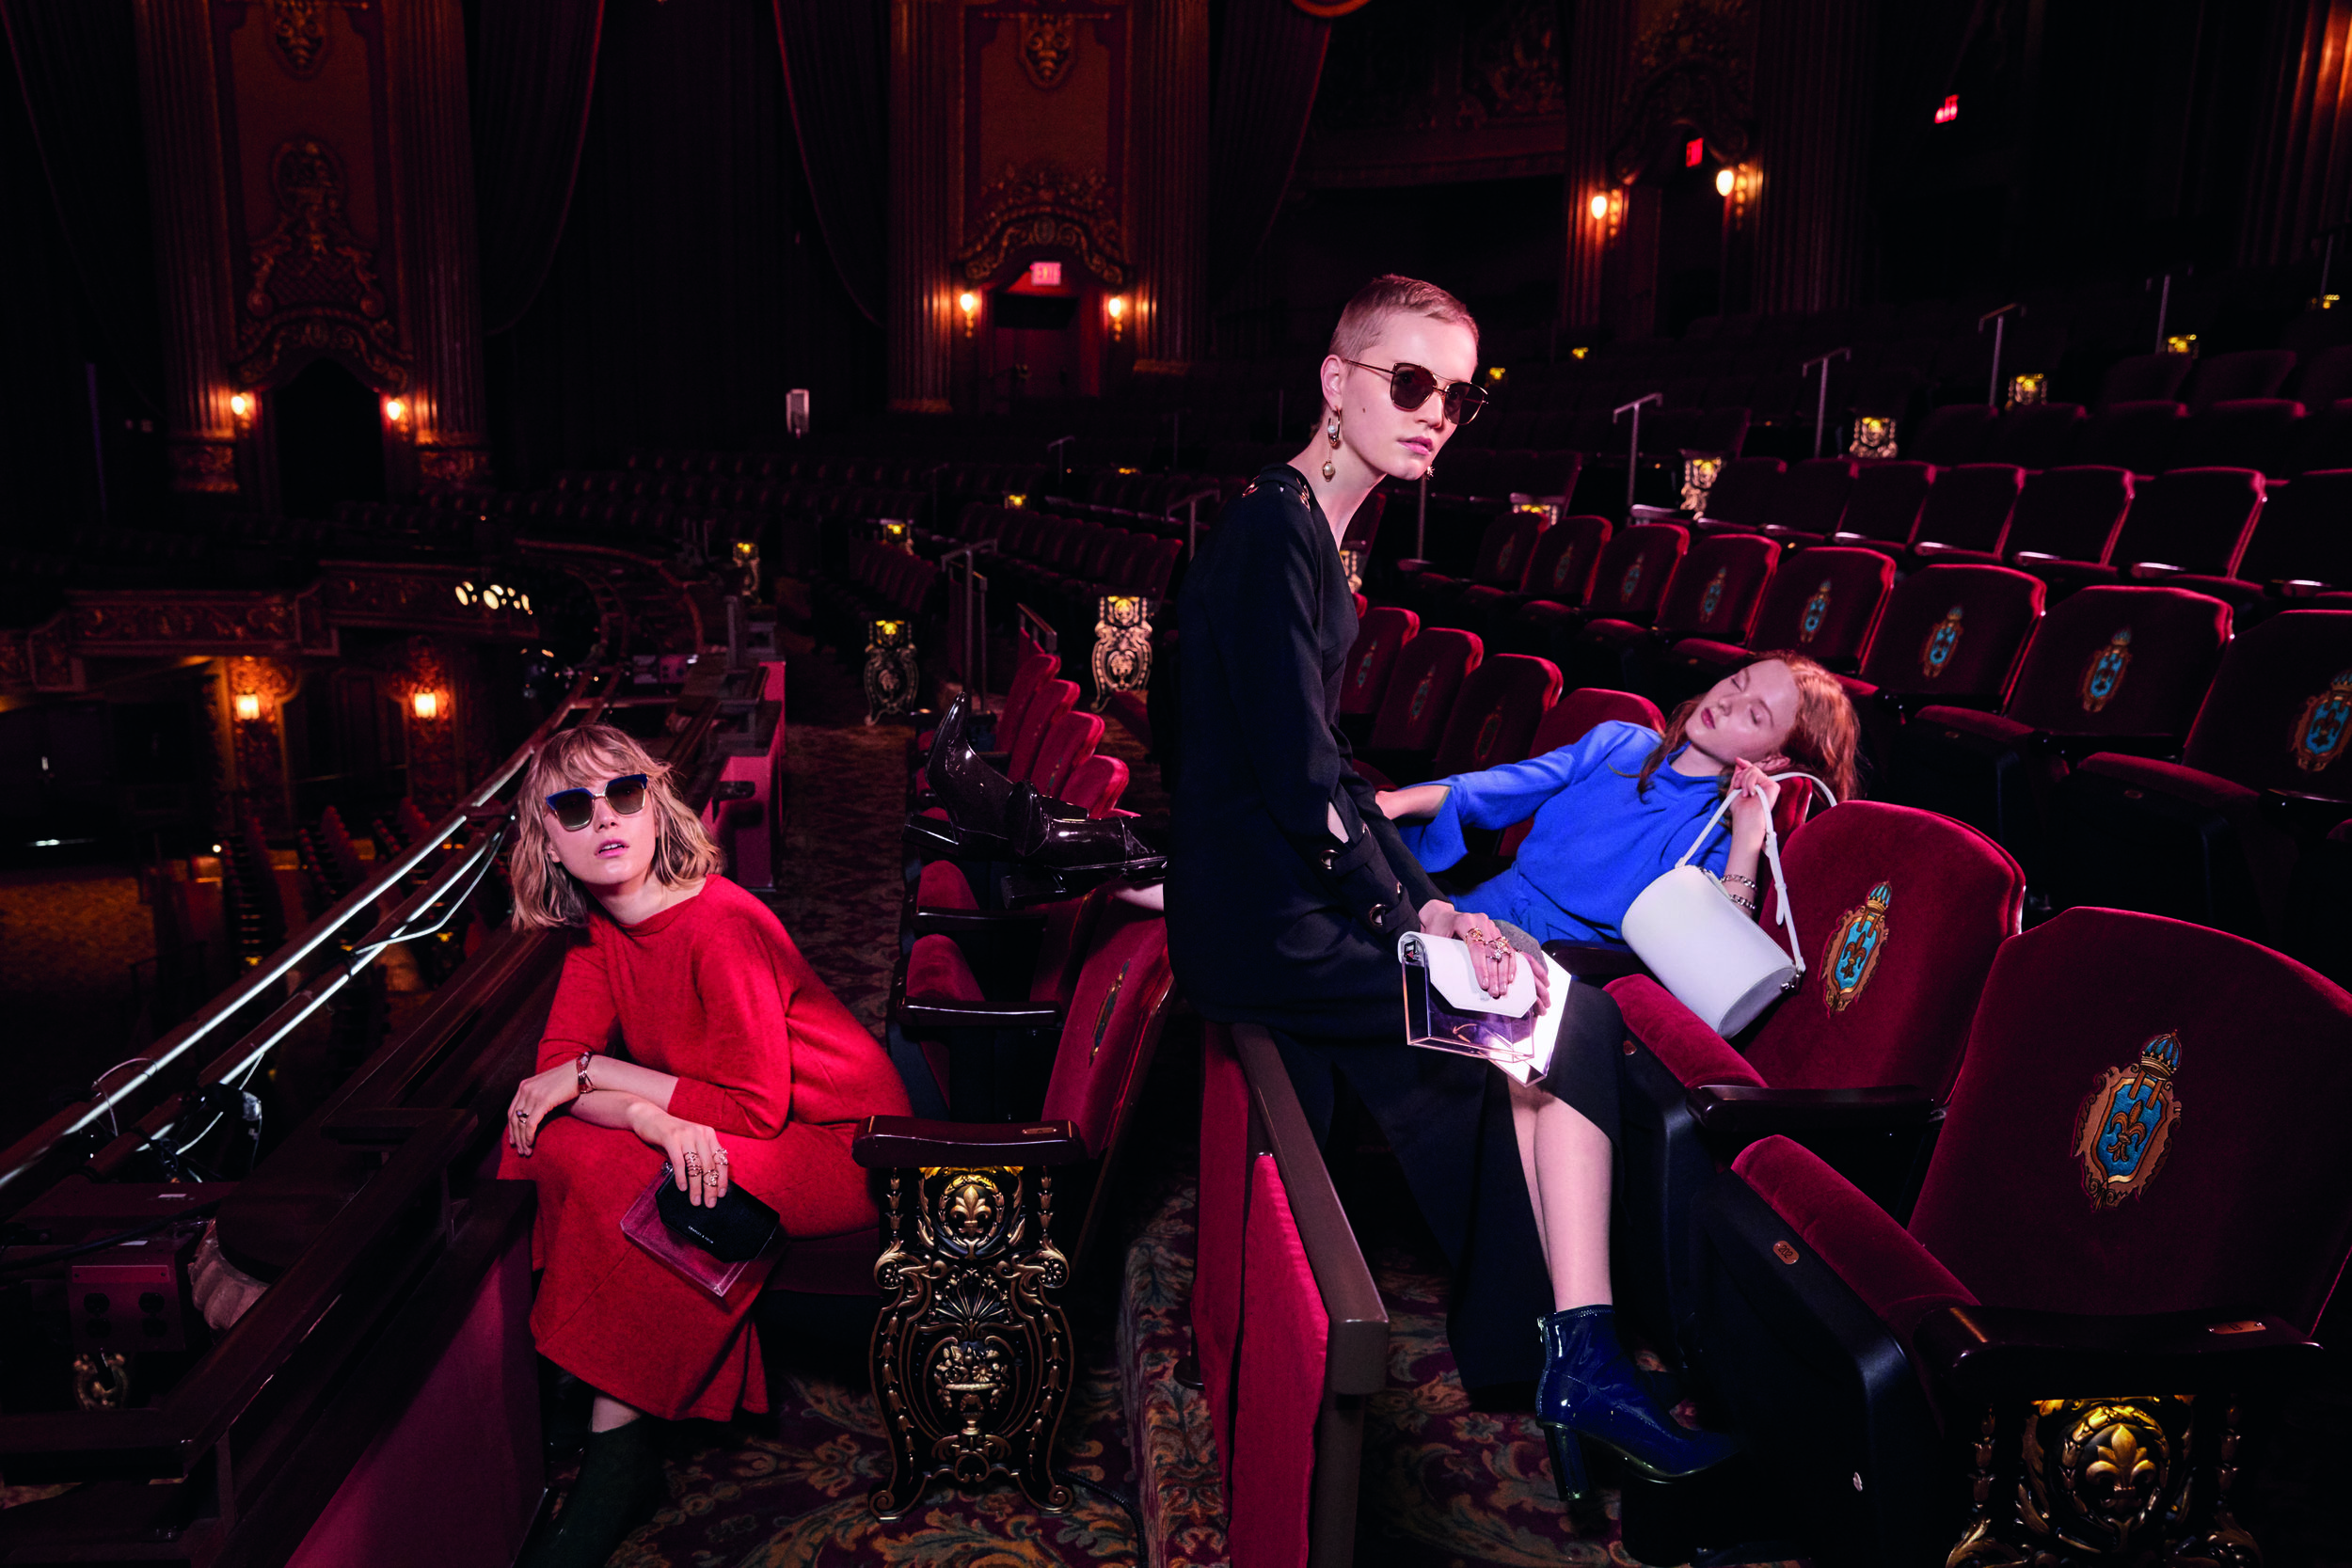 CHARLES-KEITH-fall-winter-2017-campaign-01.jpg